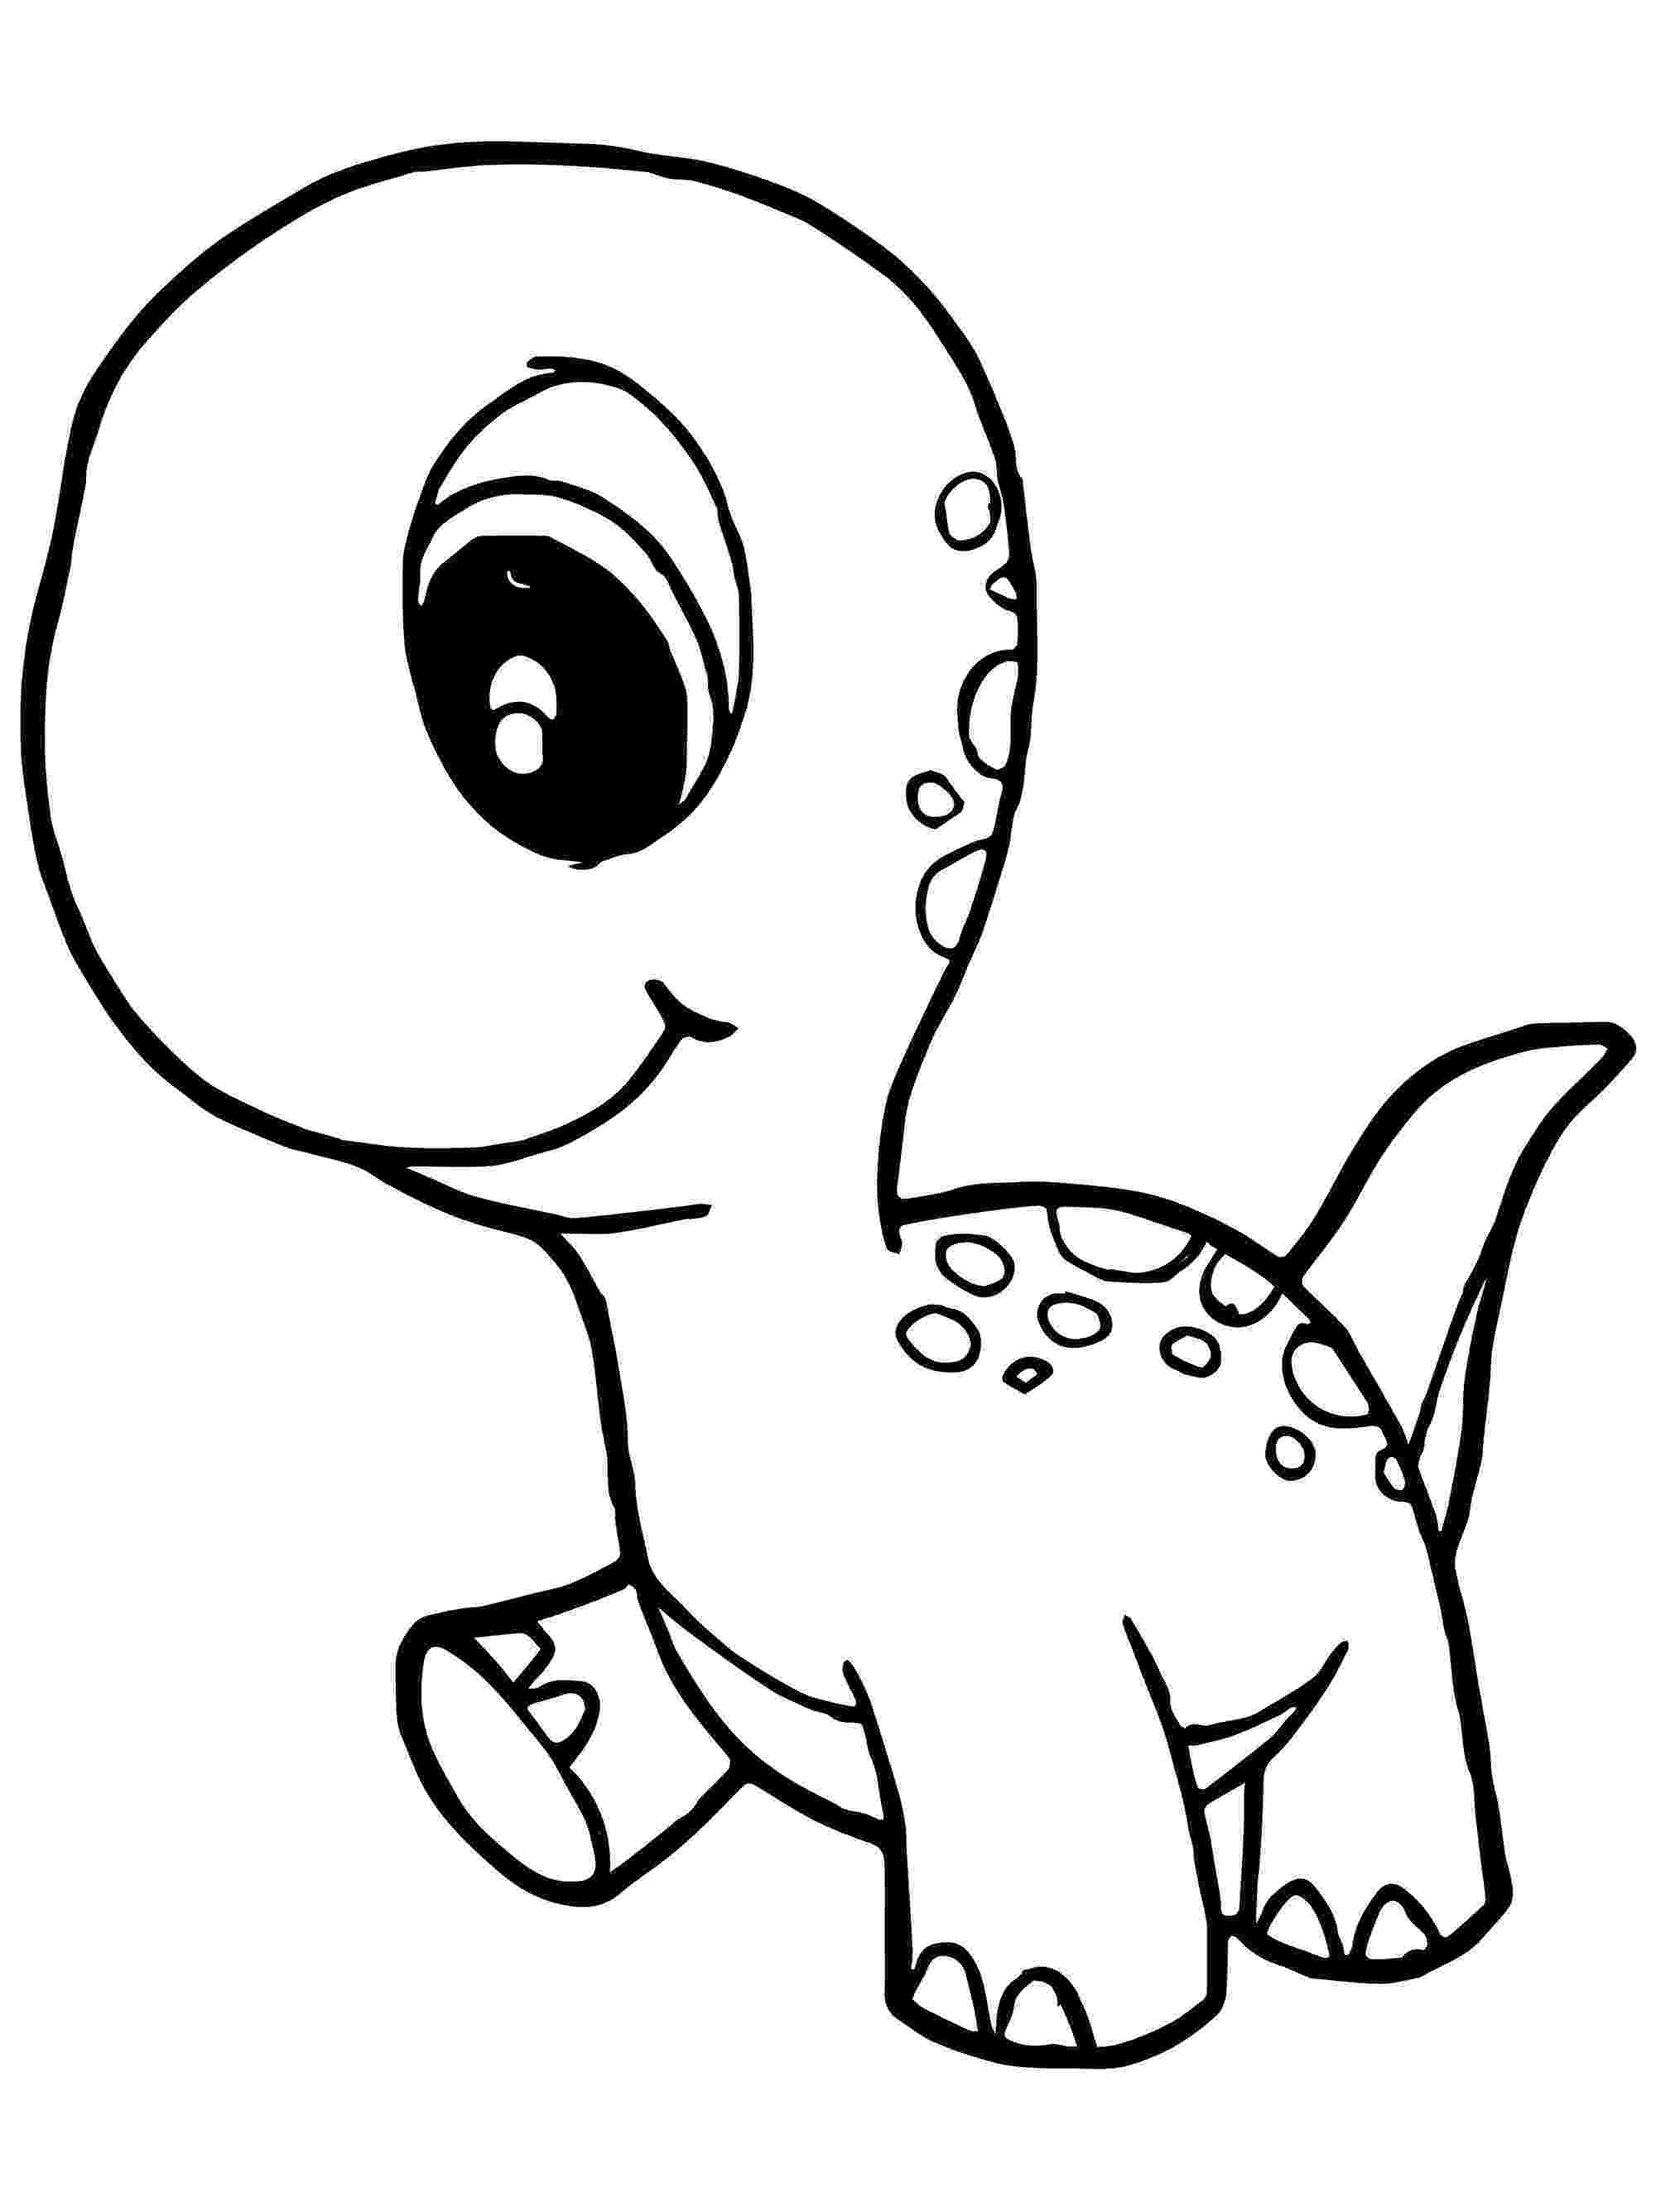 coloring pages easy dinosaurs to download ba dinosaurs kids coloring pages easy coloring pages